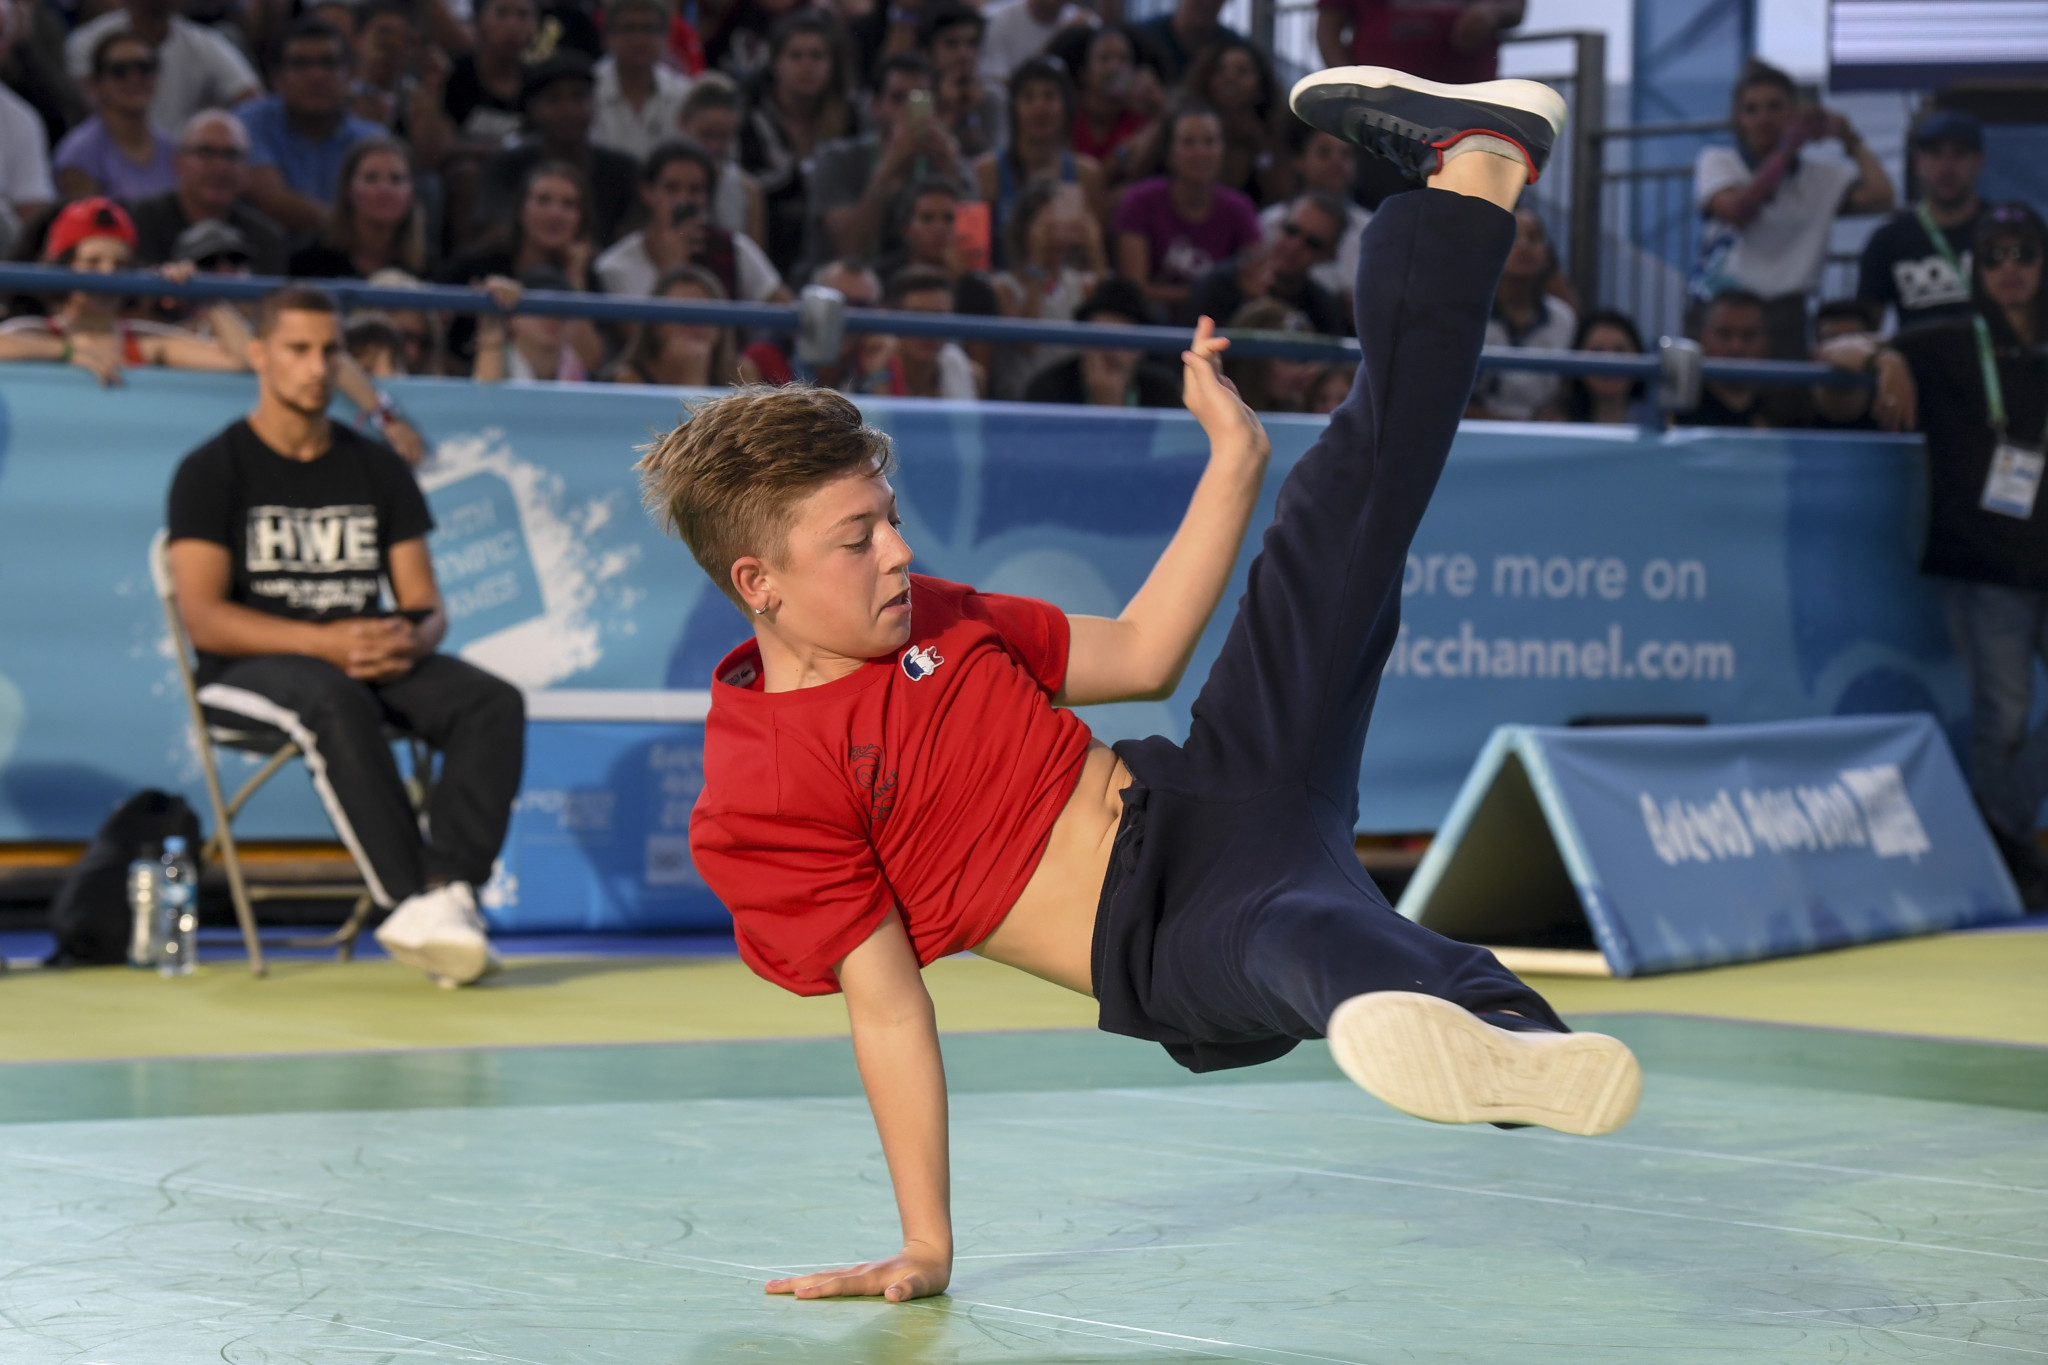 Breakdancing is in line for Paris 2024 after appearing at Buenos Aires 2018 ©Getty Images